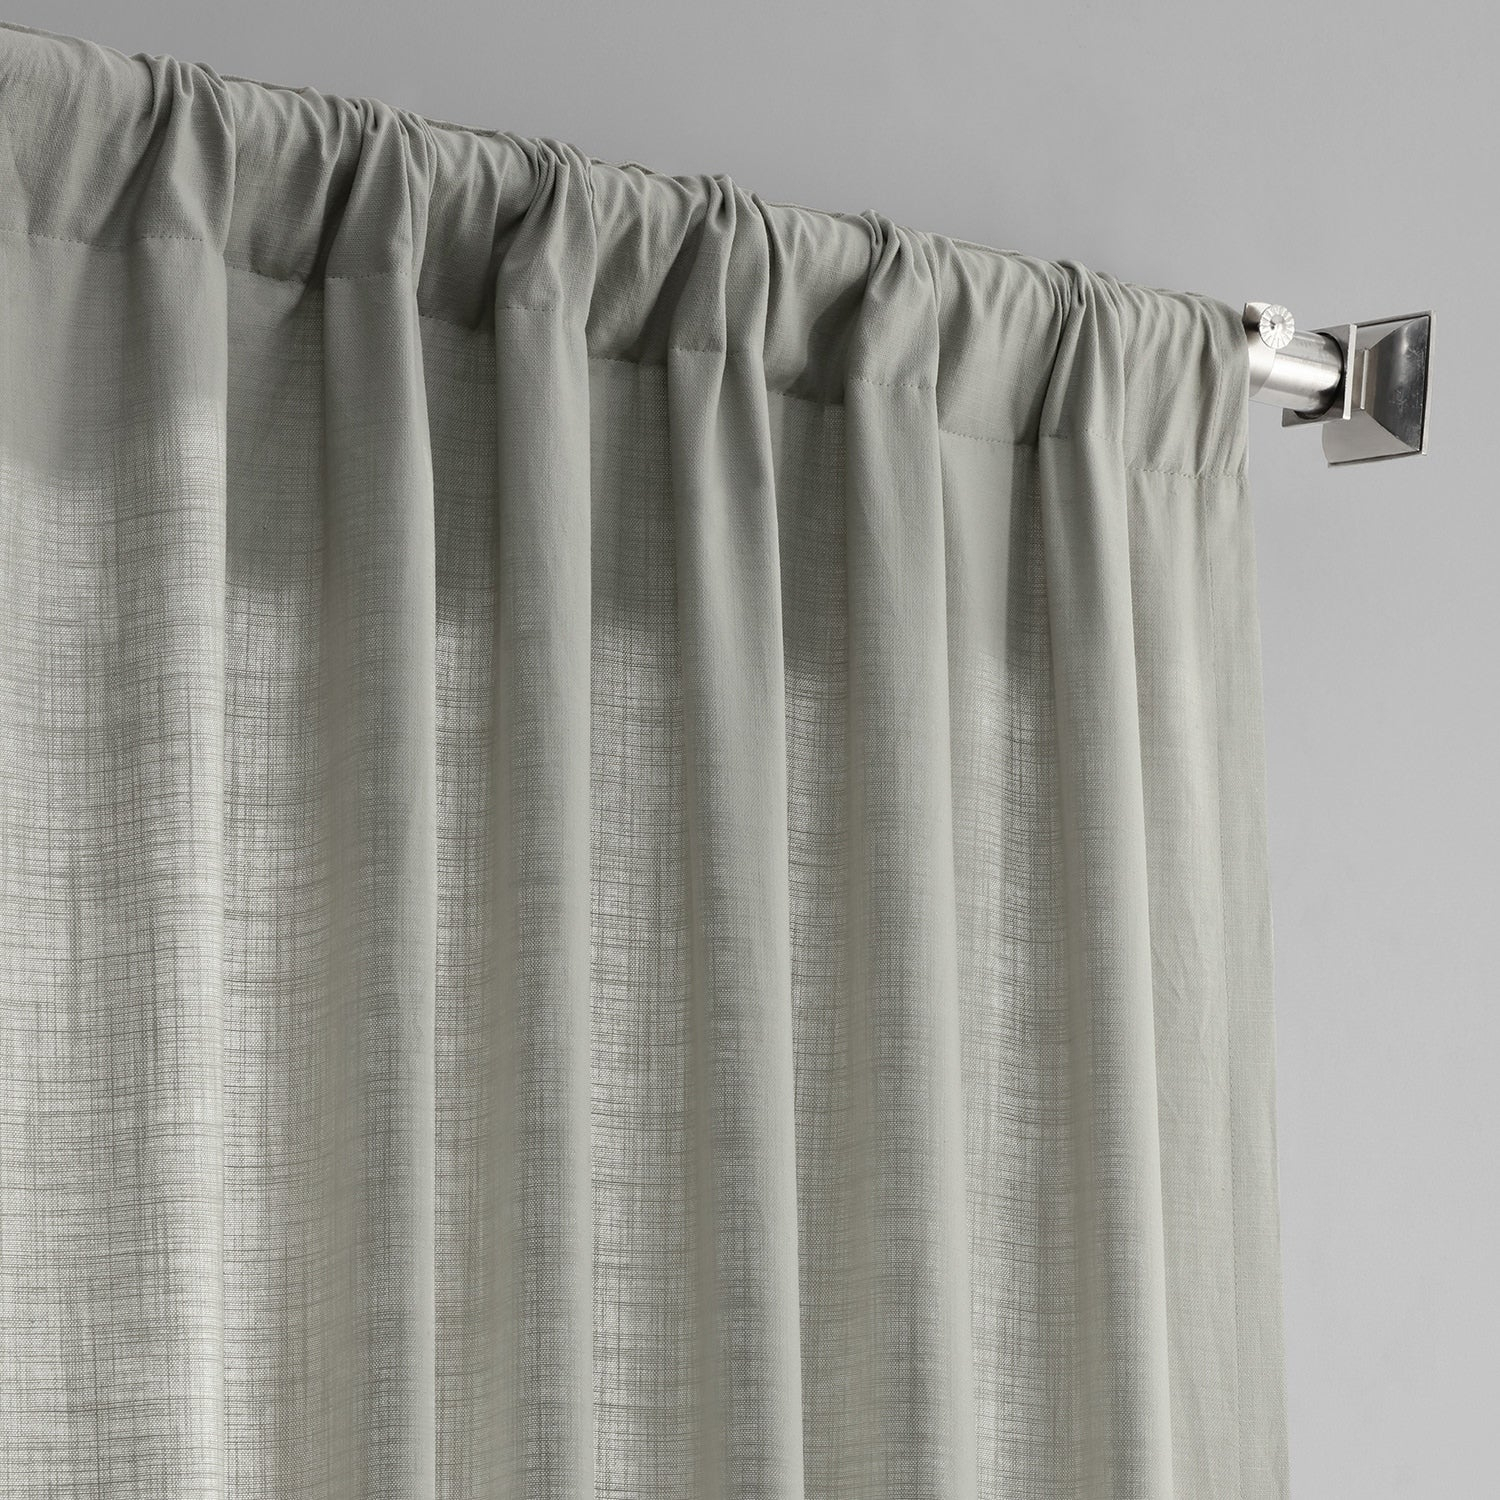 Exclusive Fabrics Solid Country Cotton Linen Weave Curtain Panel Throughout Solid Country Cotton Linen Weave Curtain Panels (View 10 of 30)